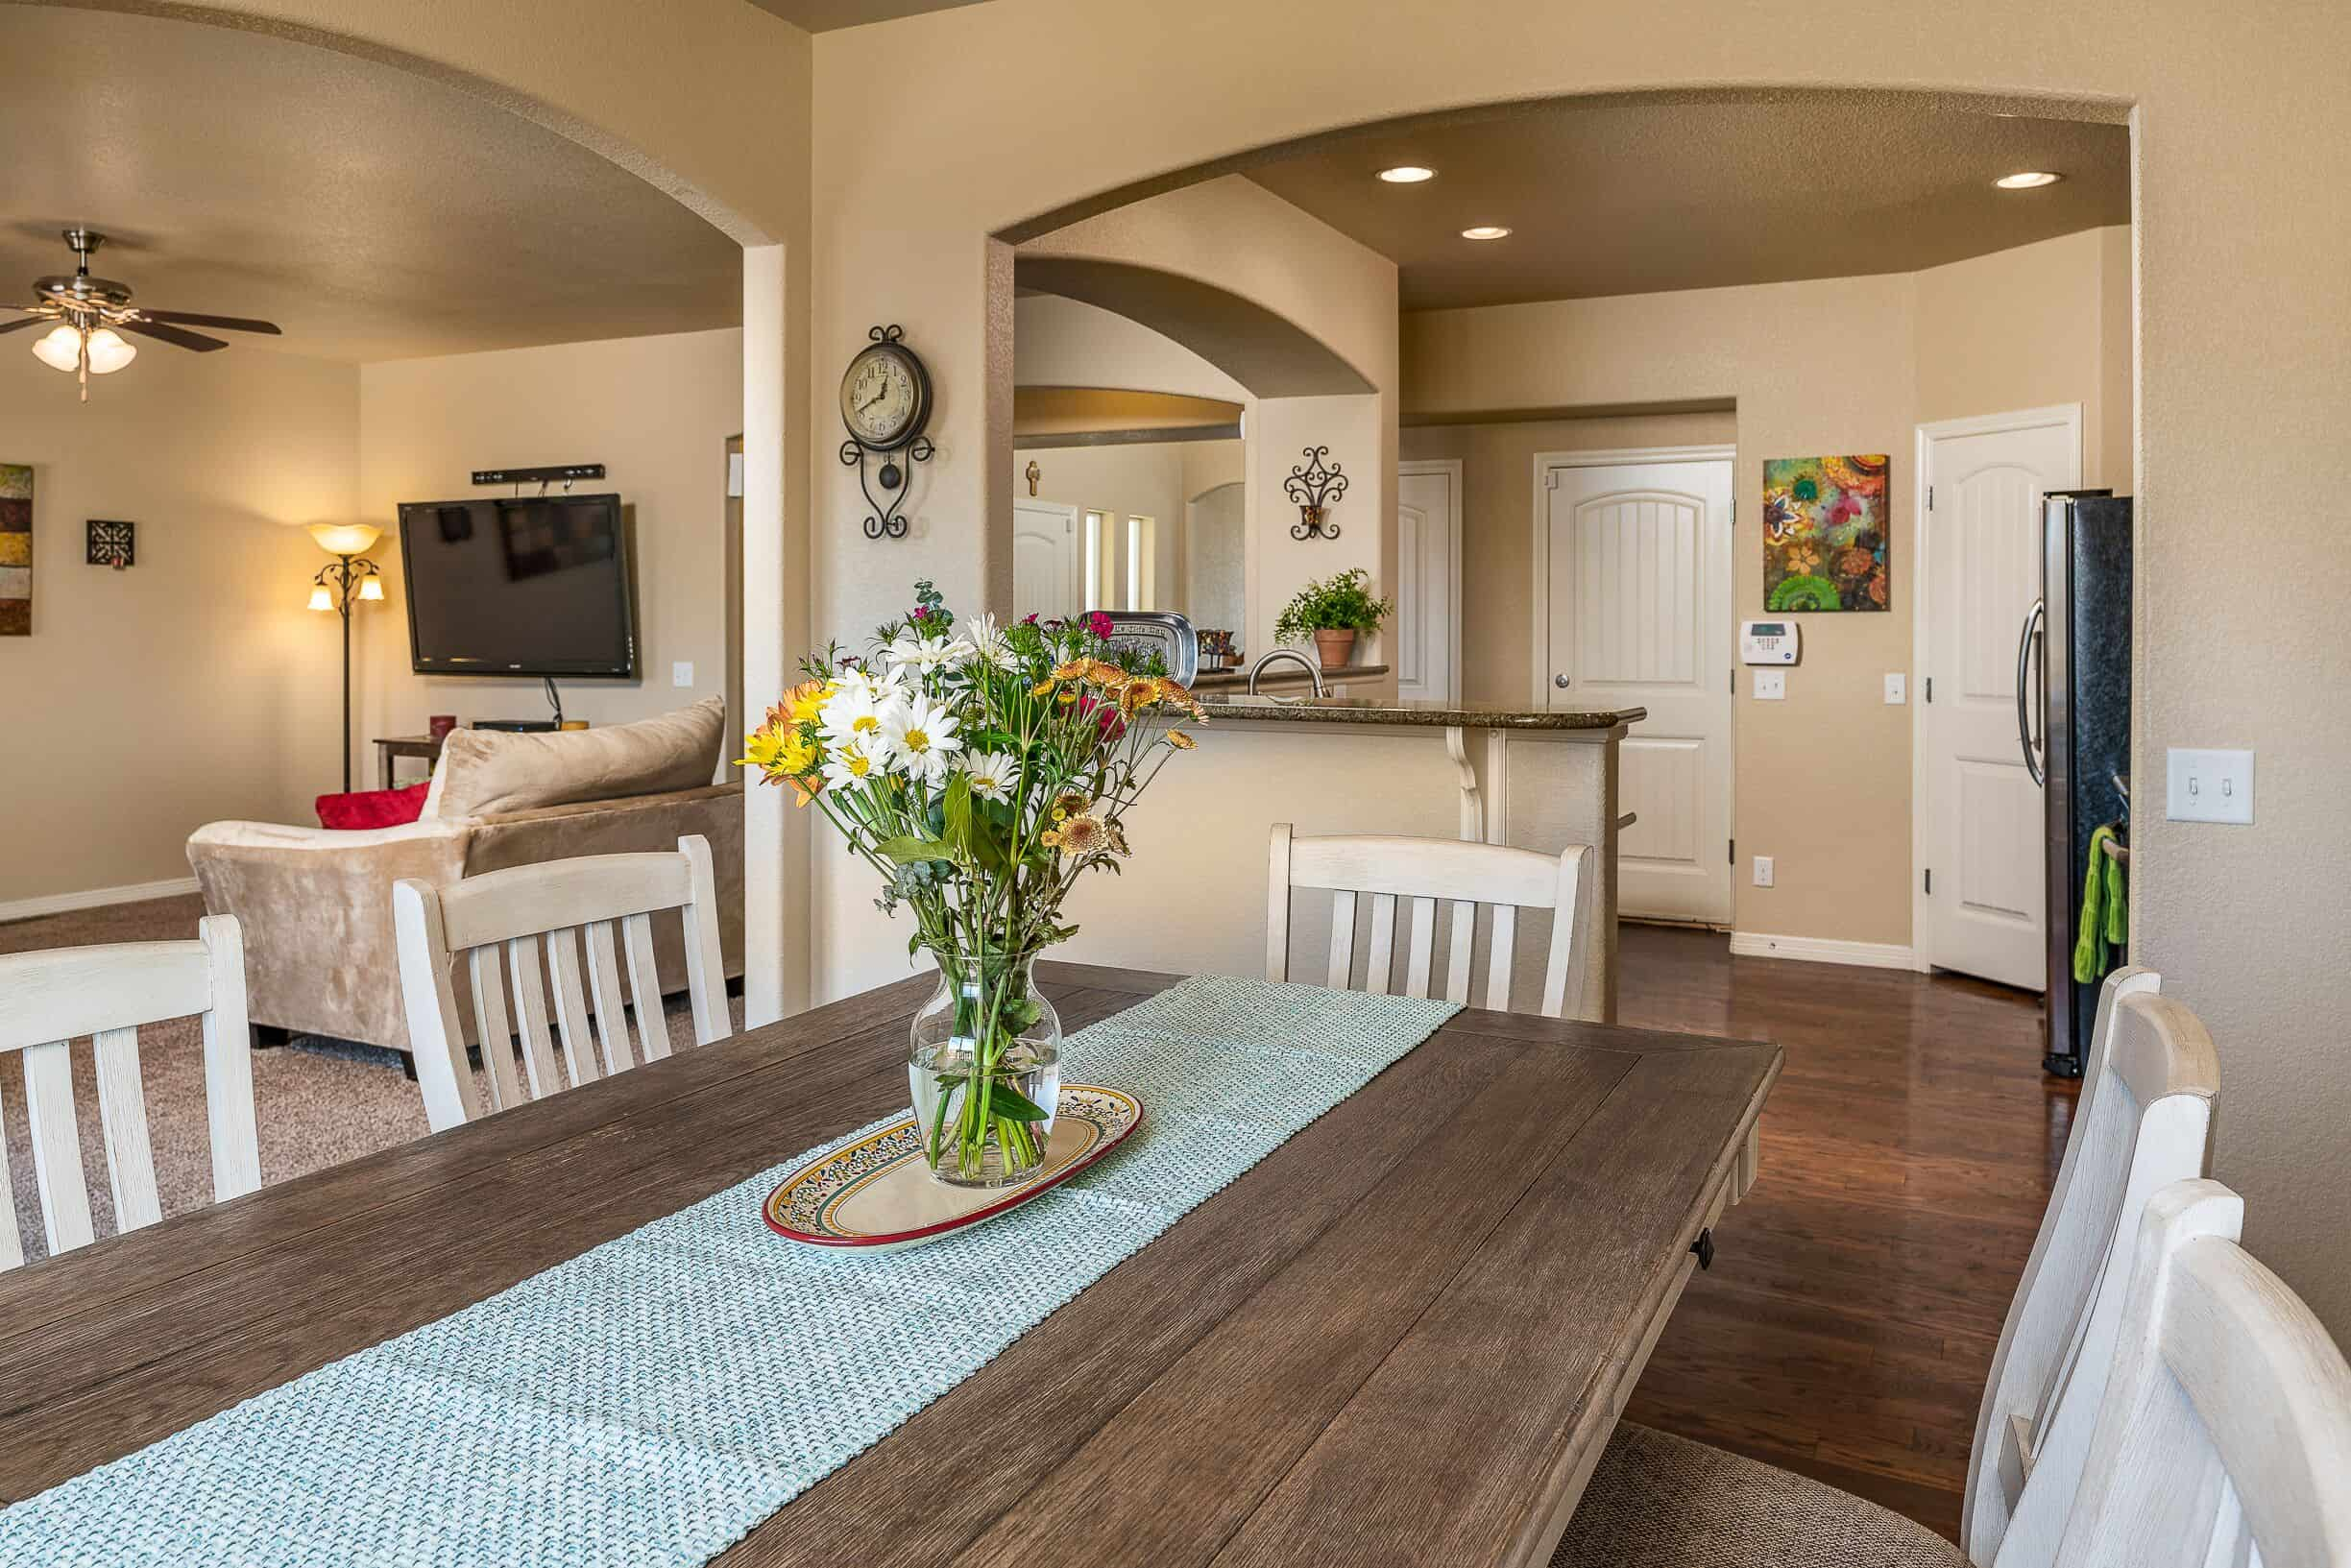 Dining Room into Kitchen and Great Room